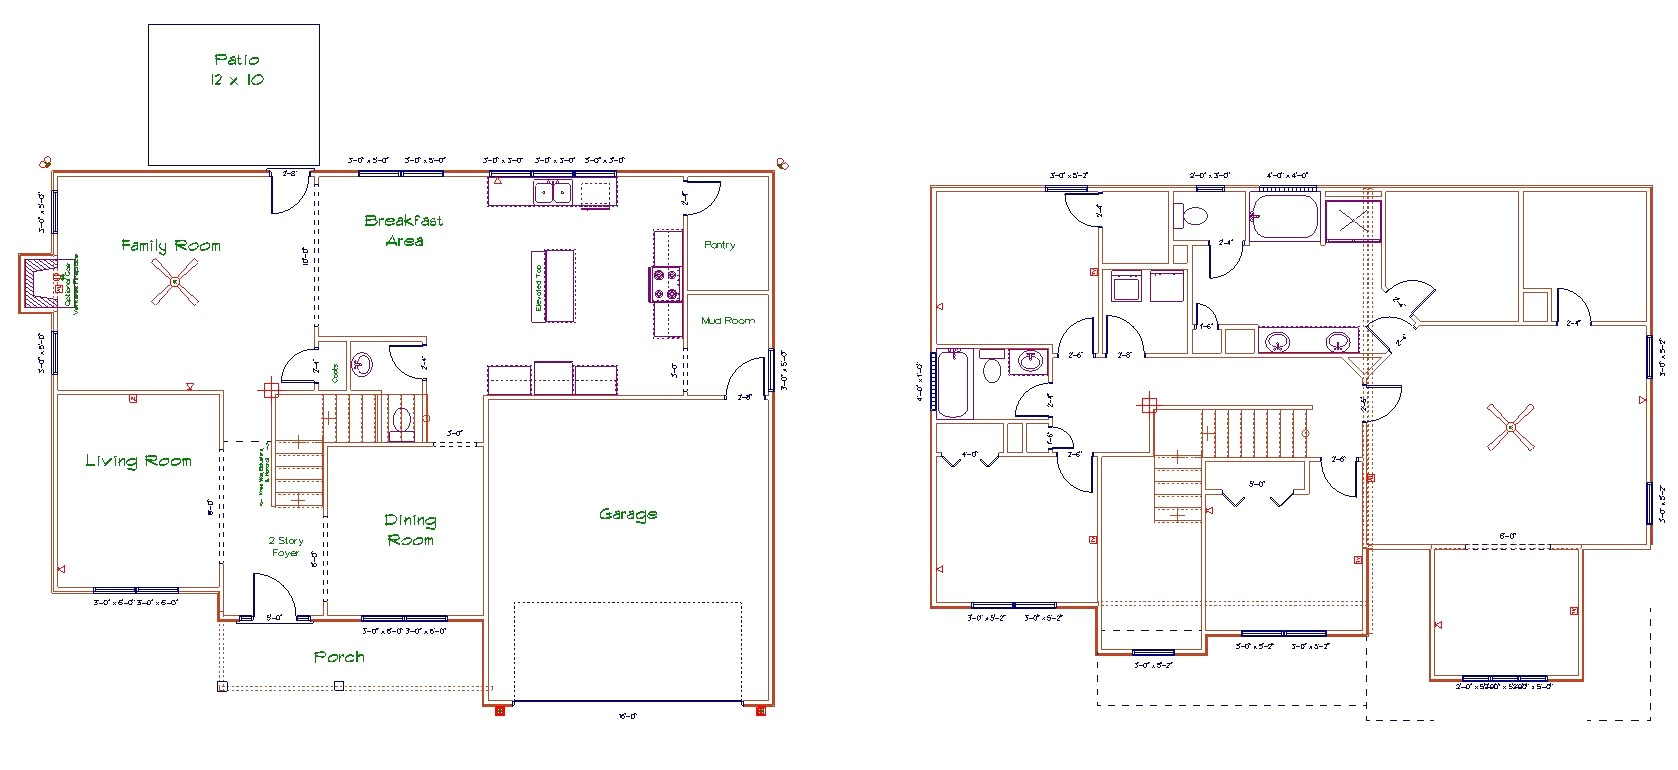 Rottlund Homes Floor Plans 36 Awesome Photos Of Rottlund Homes Floor Plans